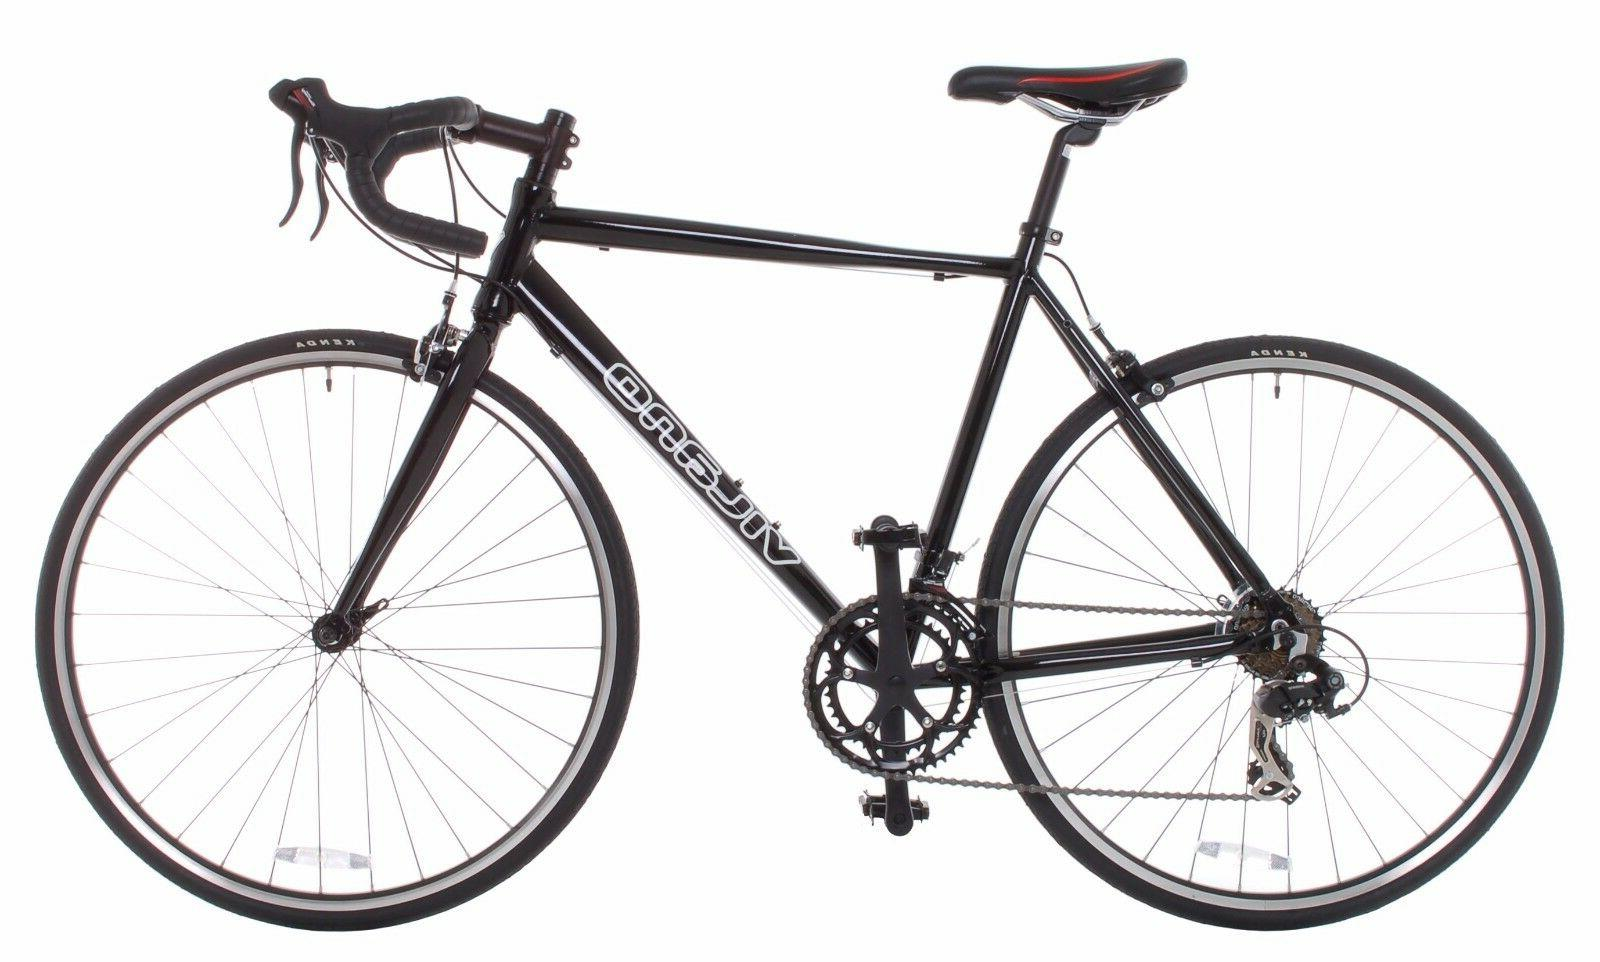 Vilano Road Bike Shimano 21 Speed Double Butted Aluminum Bla